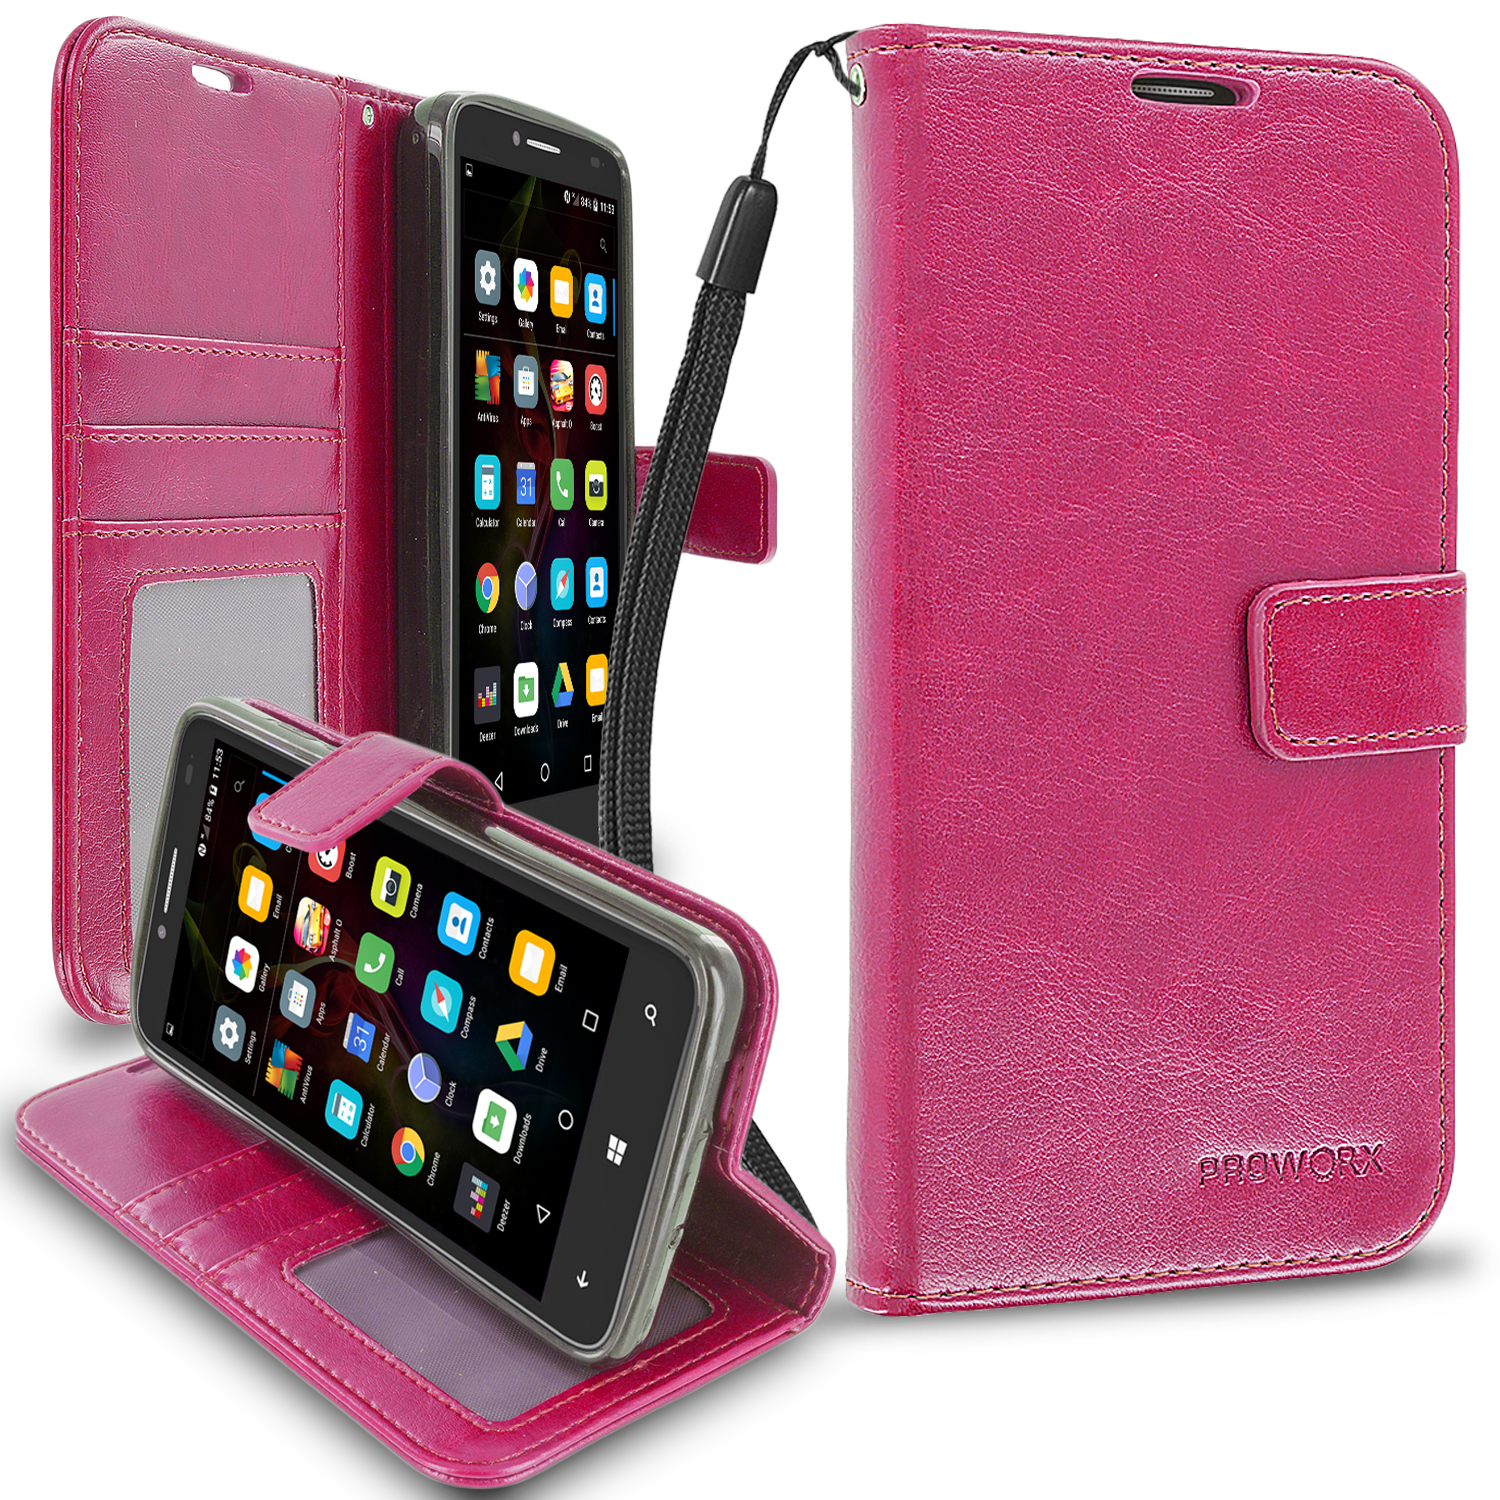 Alcatel OneTouch Fierce XL Hot Pink ProWorx Wallet Case Luxury PU Leather Case Cover With Card Slots & Stand